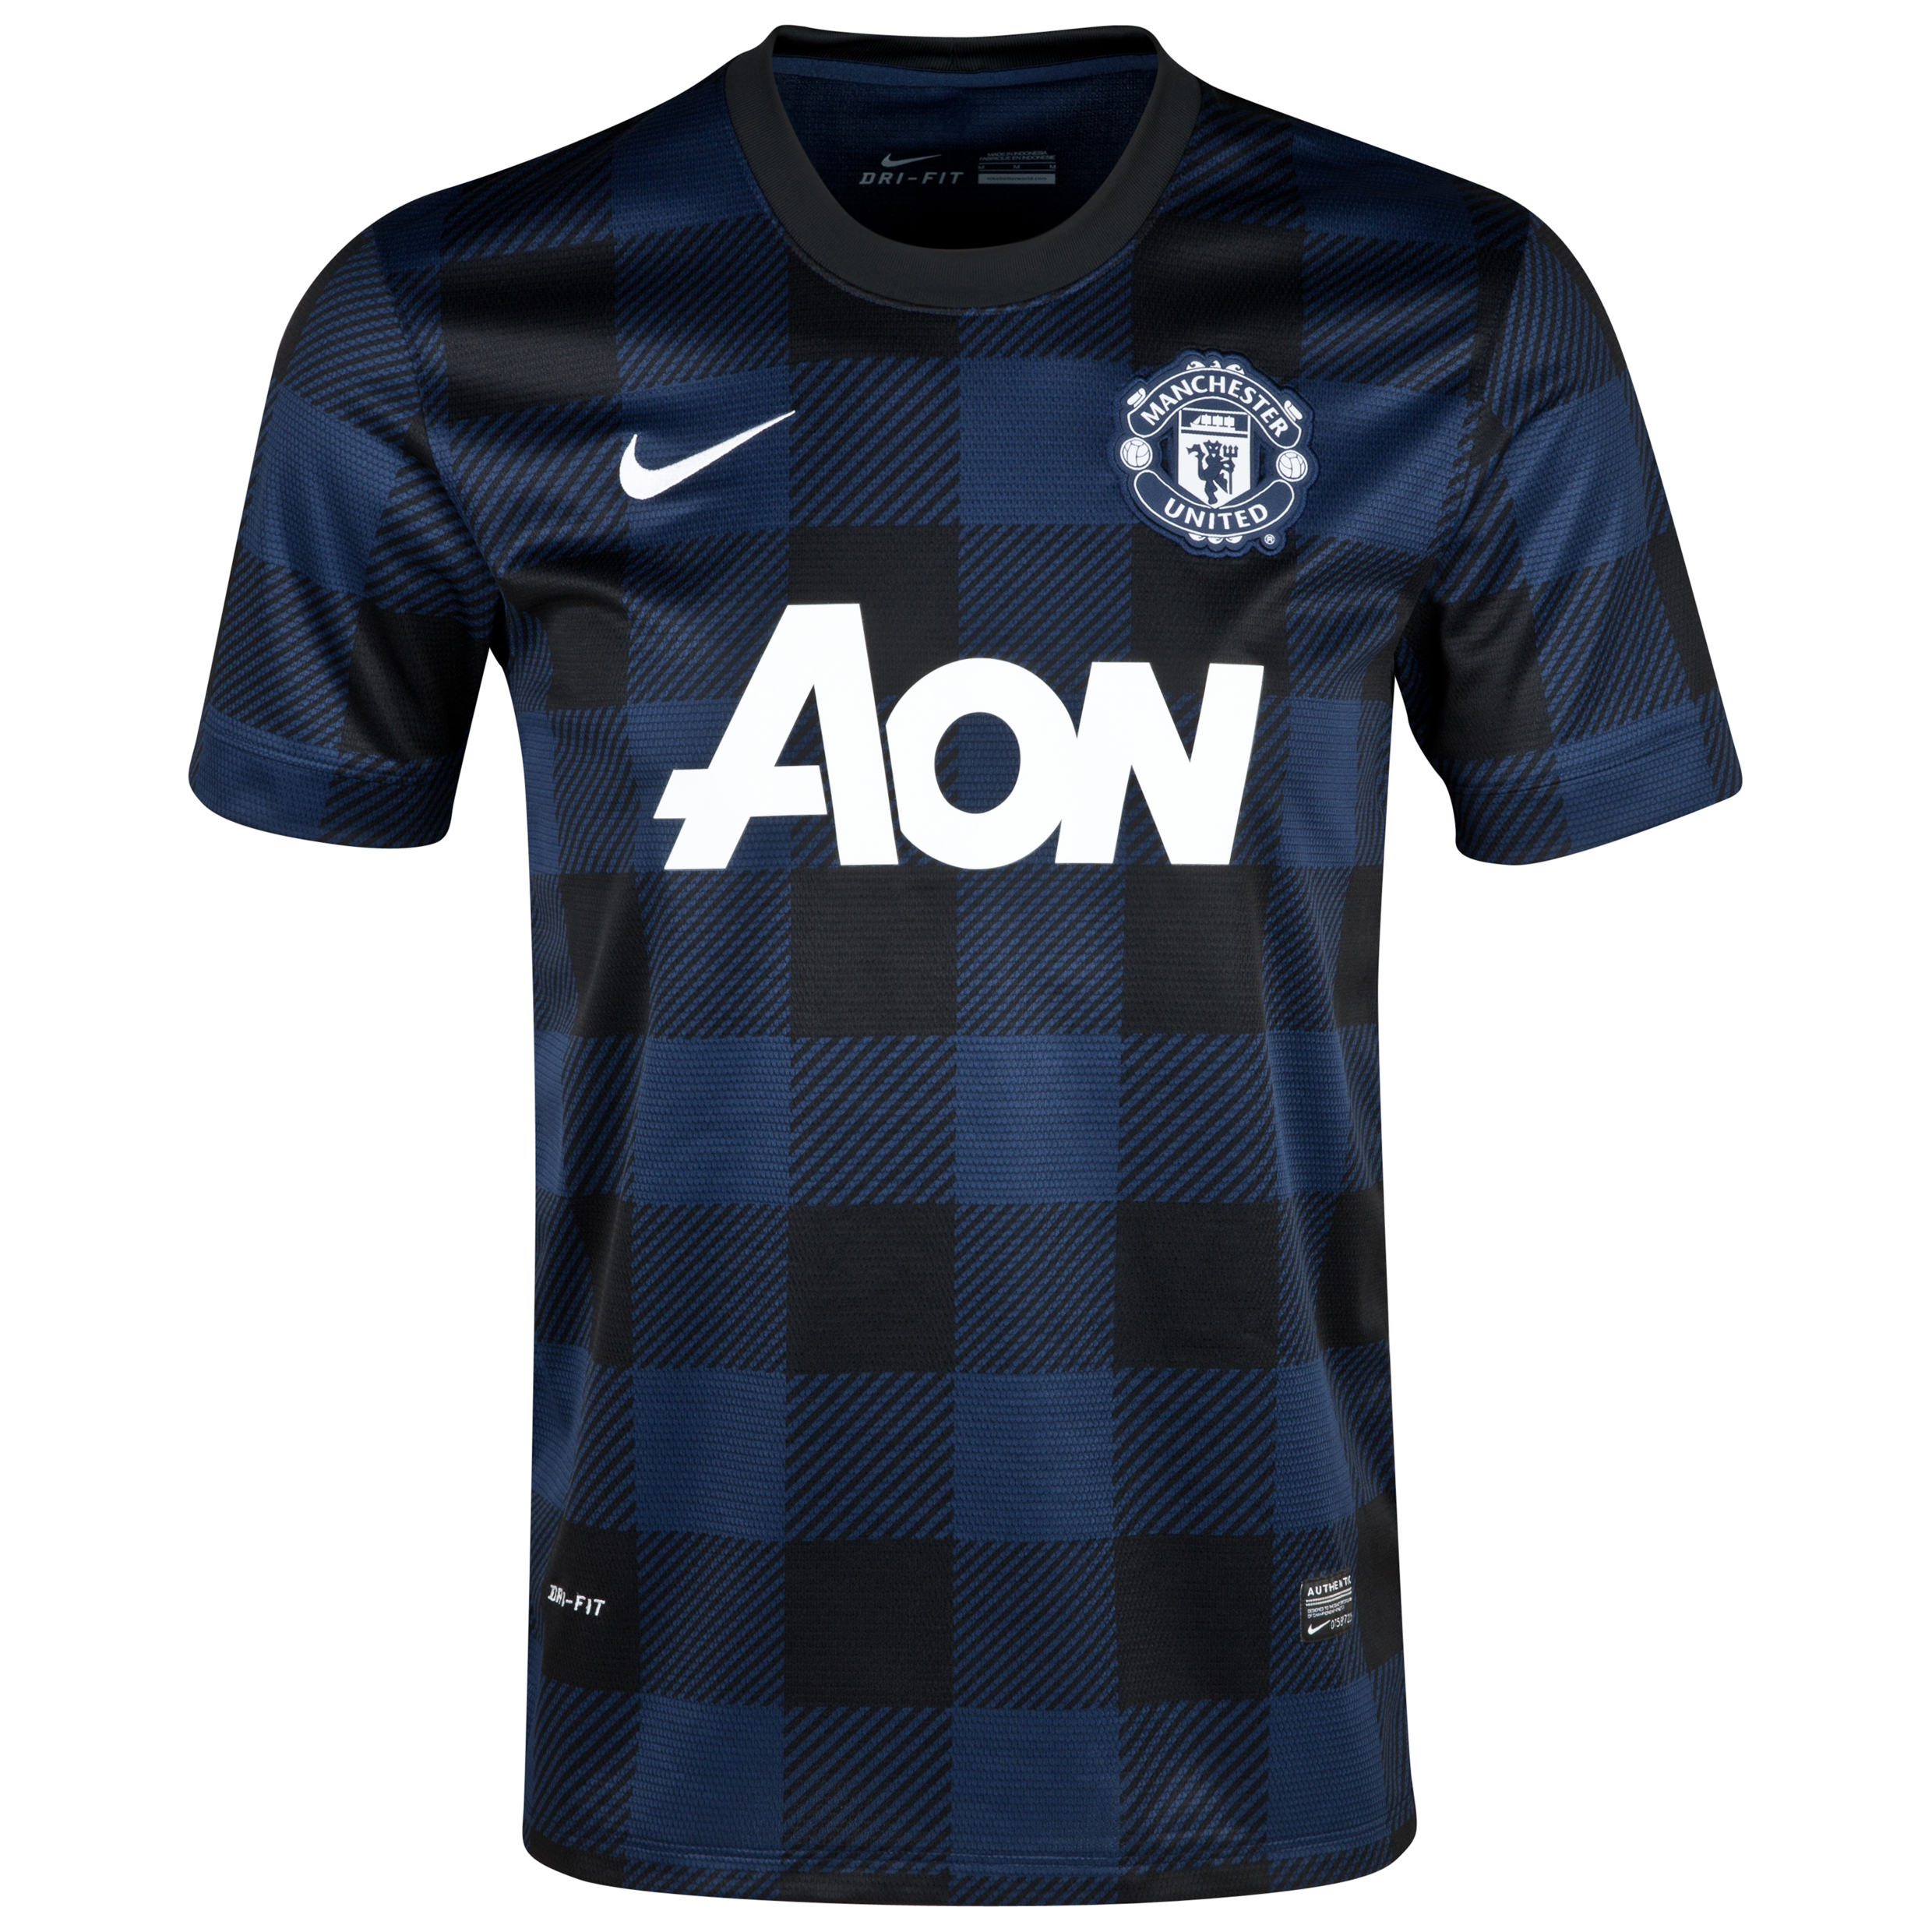 Manchester United UEFA Champions League Away Shirt 2013/14 - Womens with v.Persie 20 printing